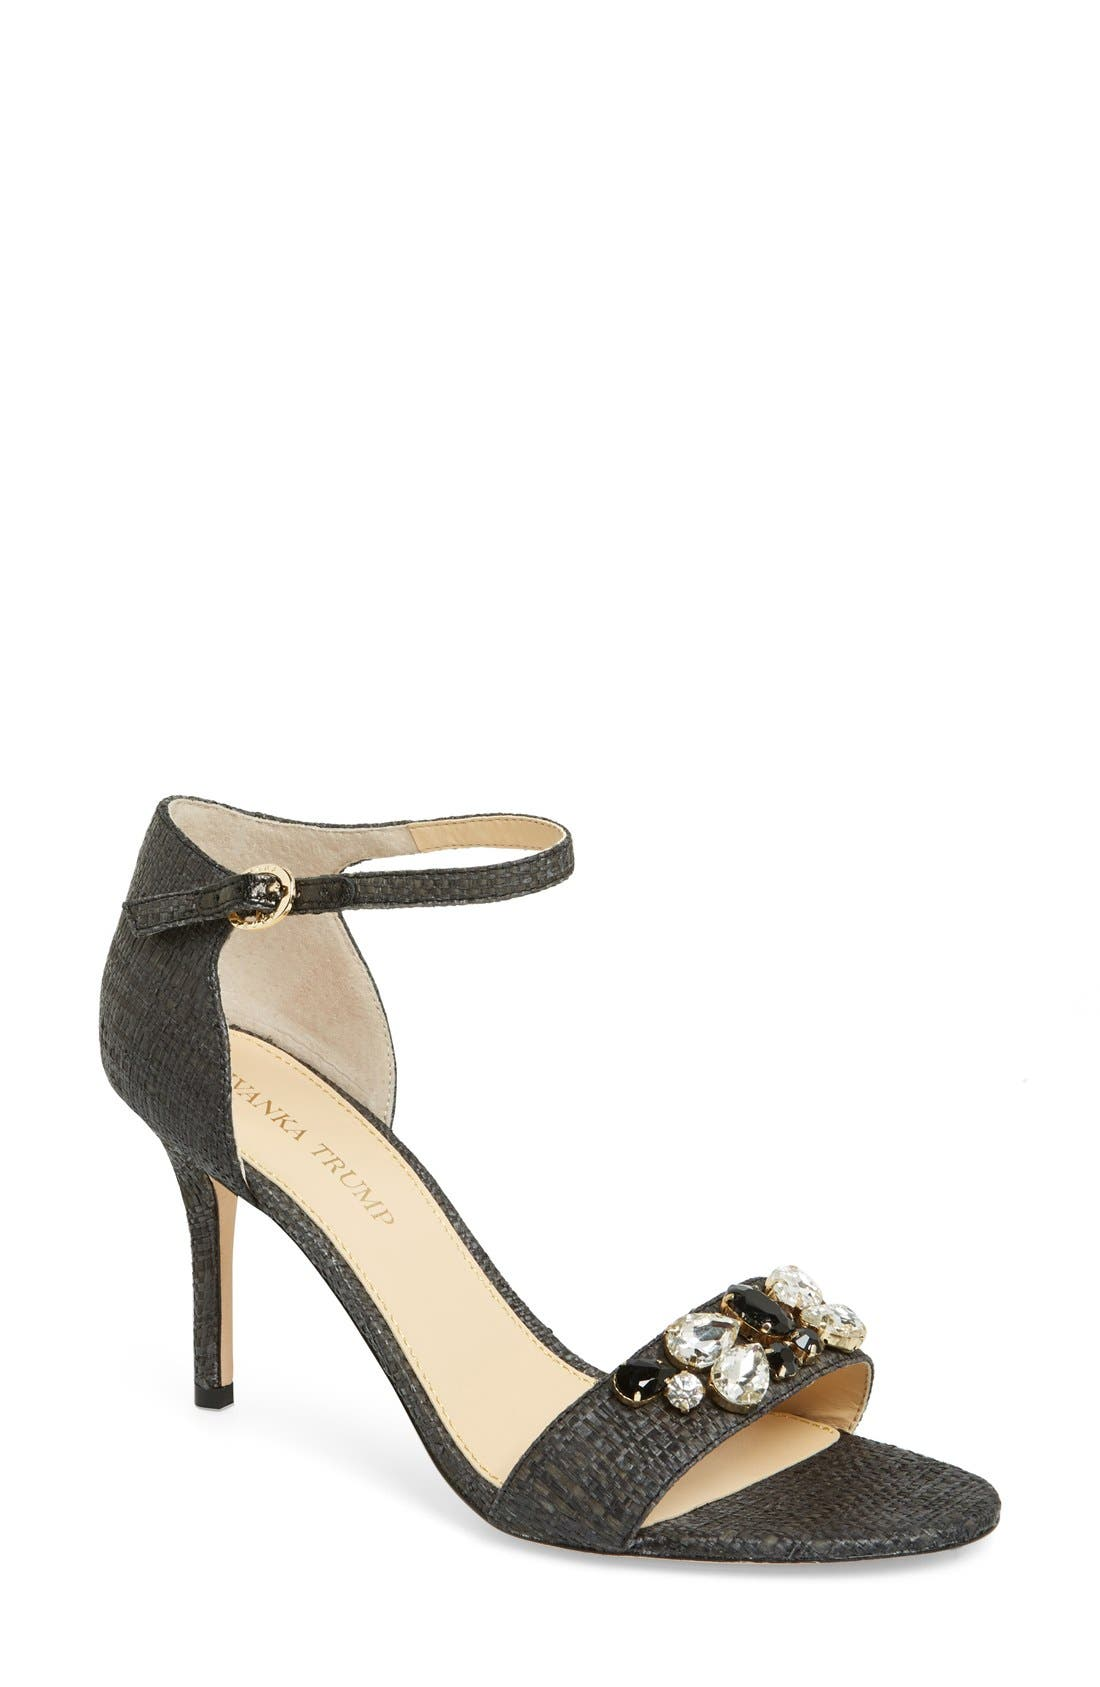 'Gessa' Crystal Embellished Print Sandal,                             Main thumbnail 1, color,                             001